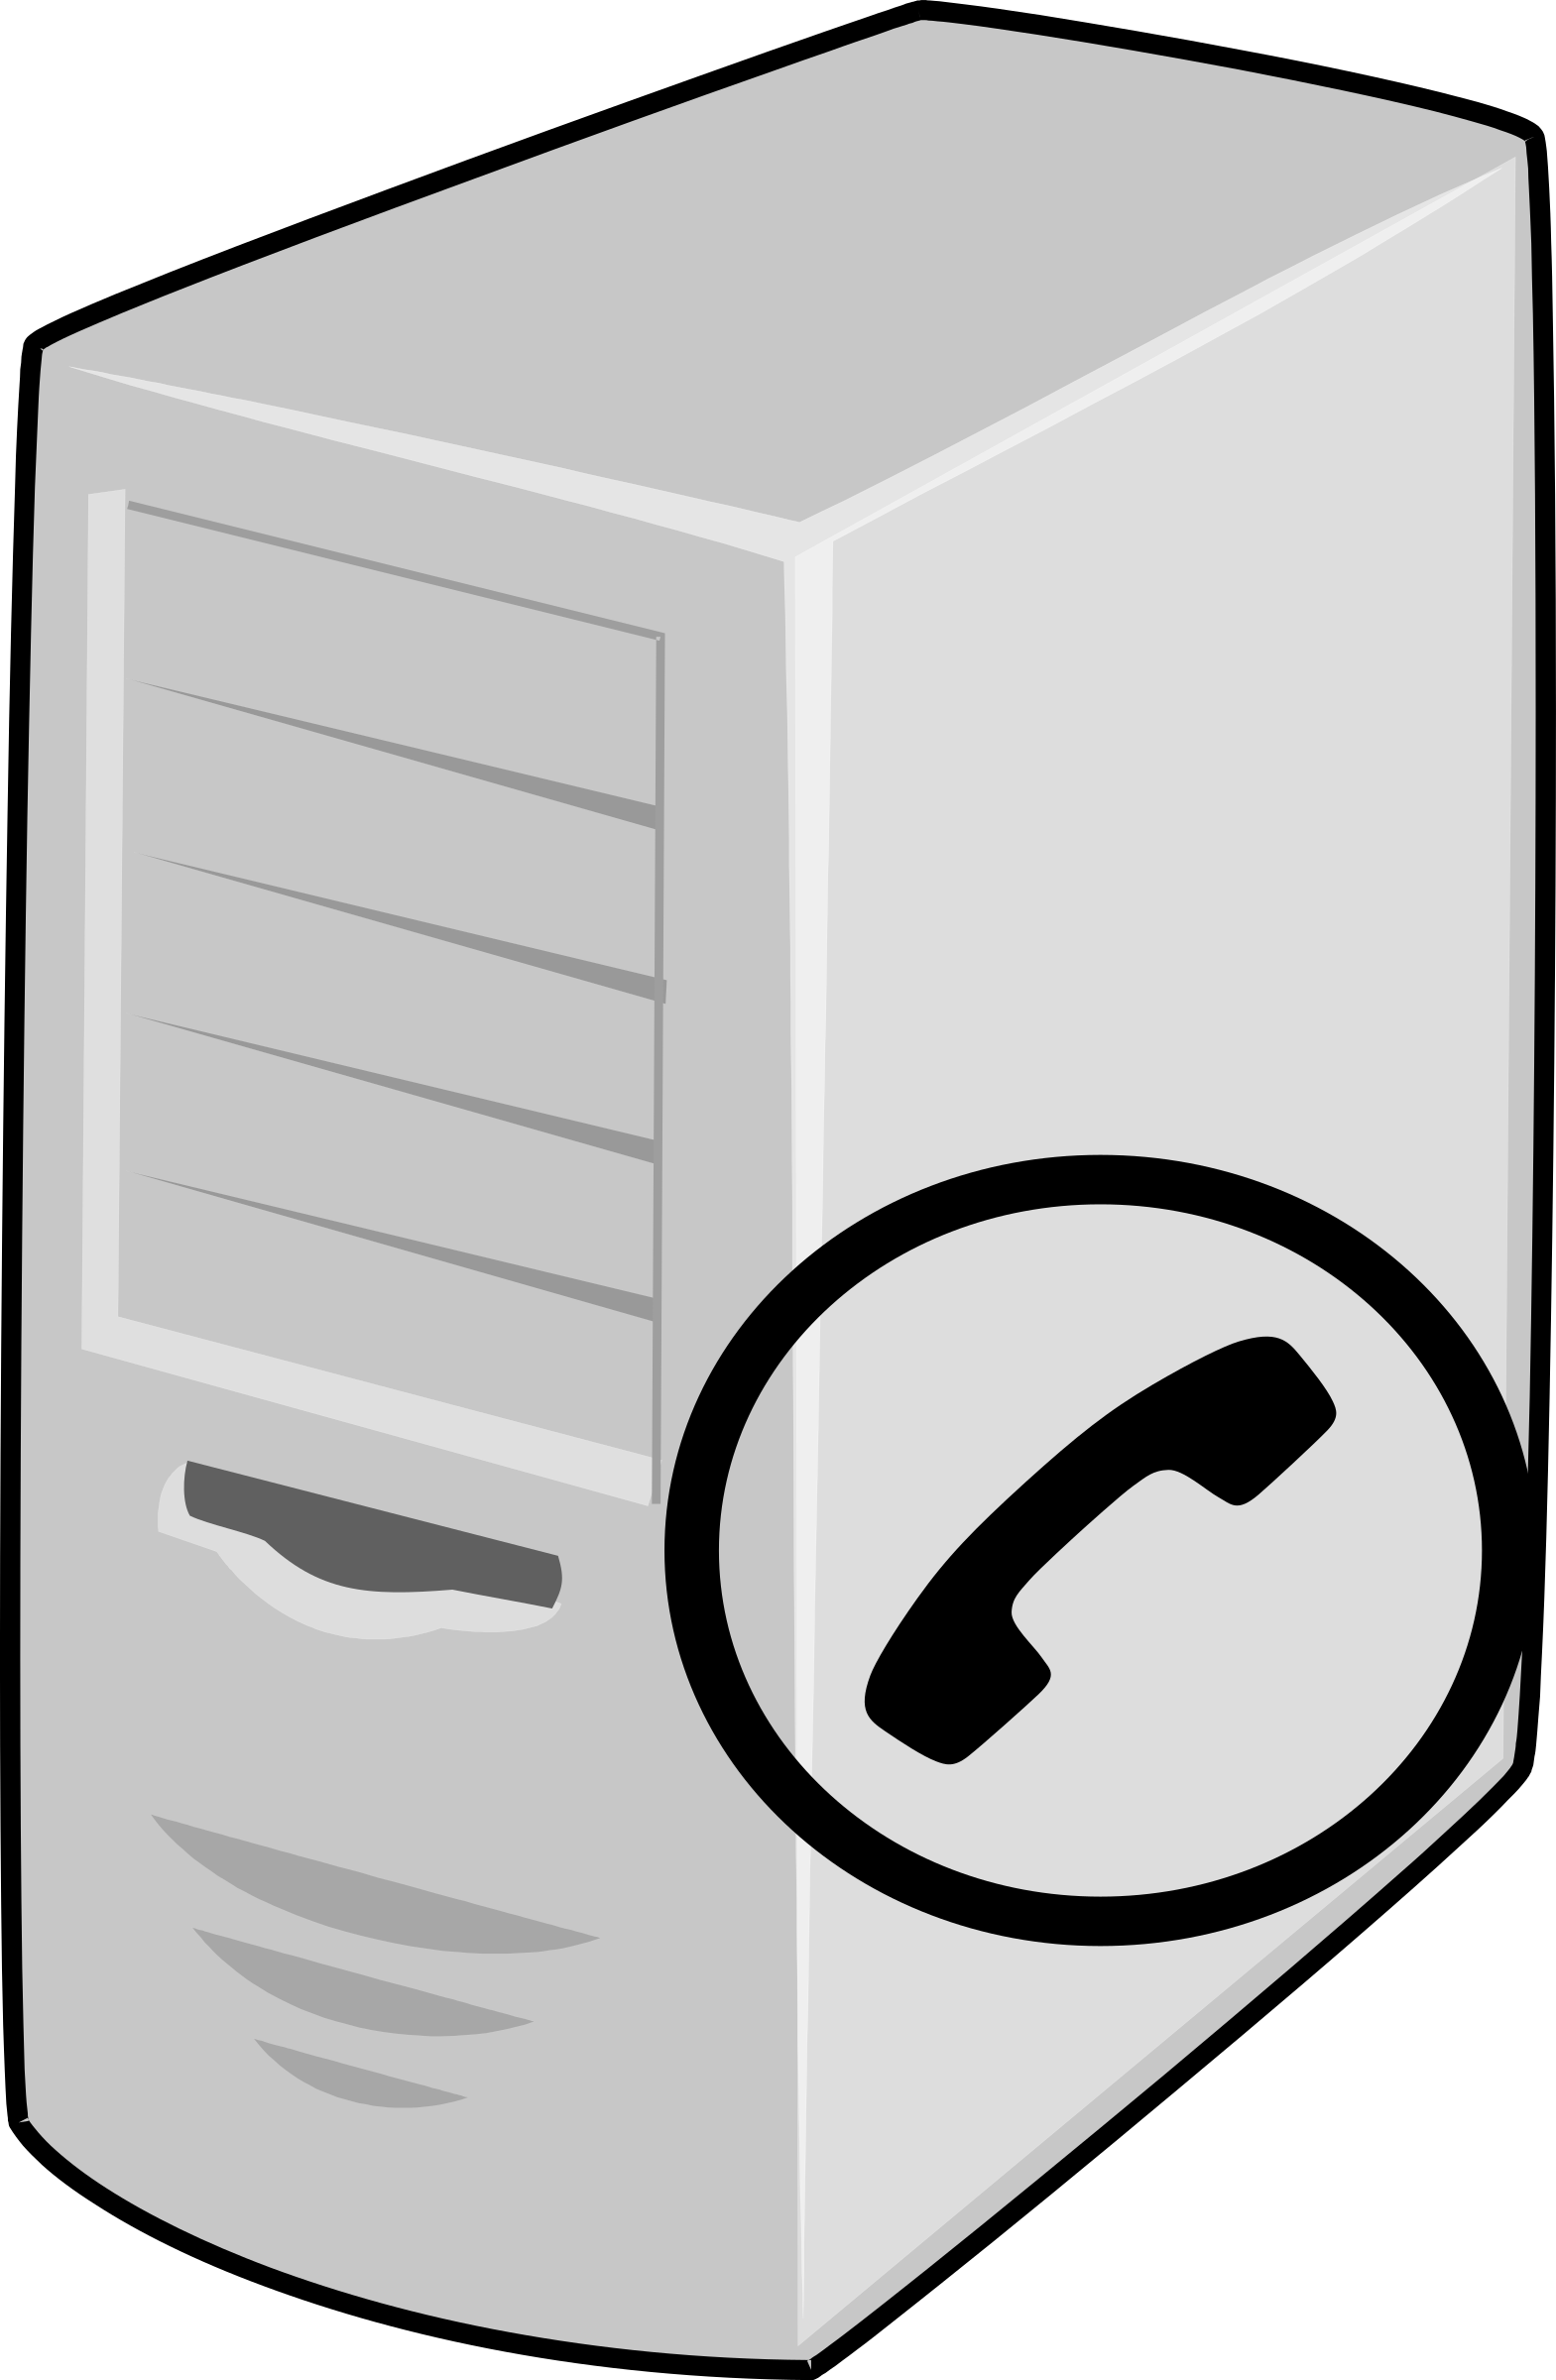 Server clipart server icon. Voip big image png